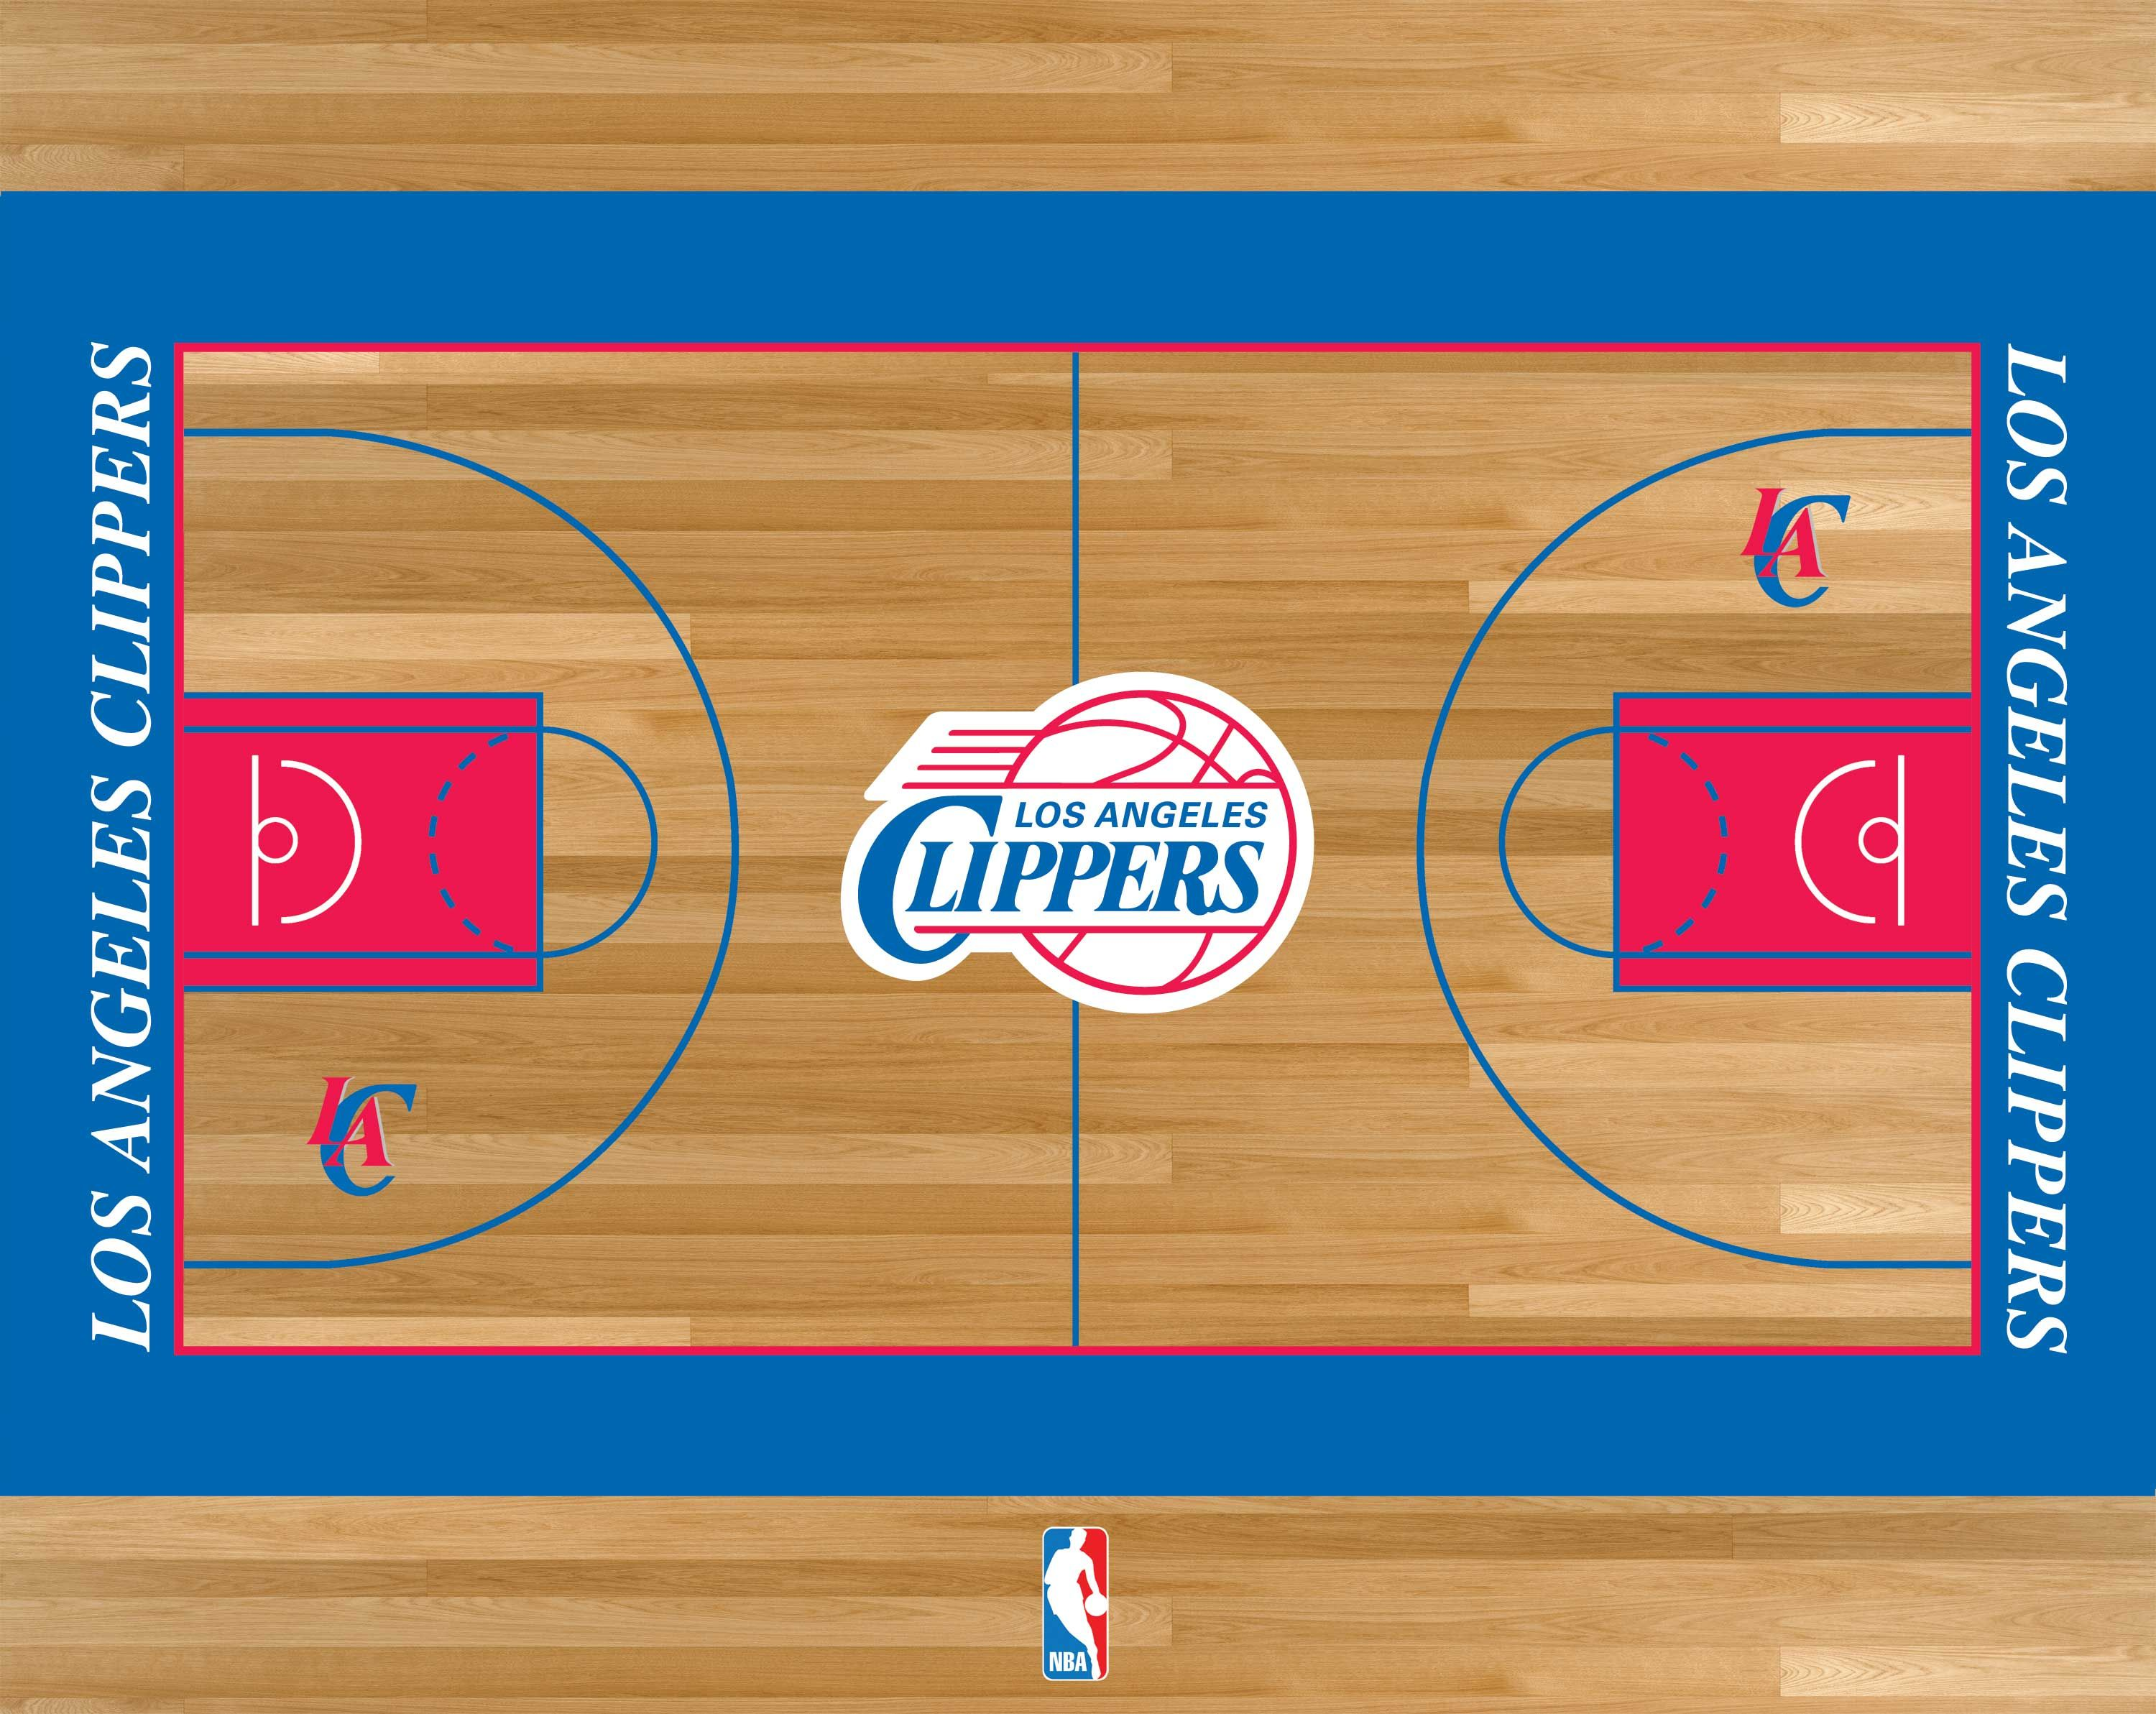 Los Angeles Clippers Basketball Court Los Angeles Clippers Los